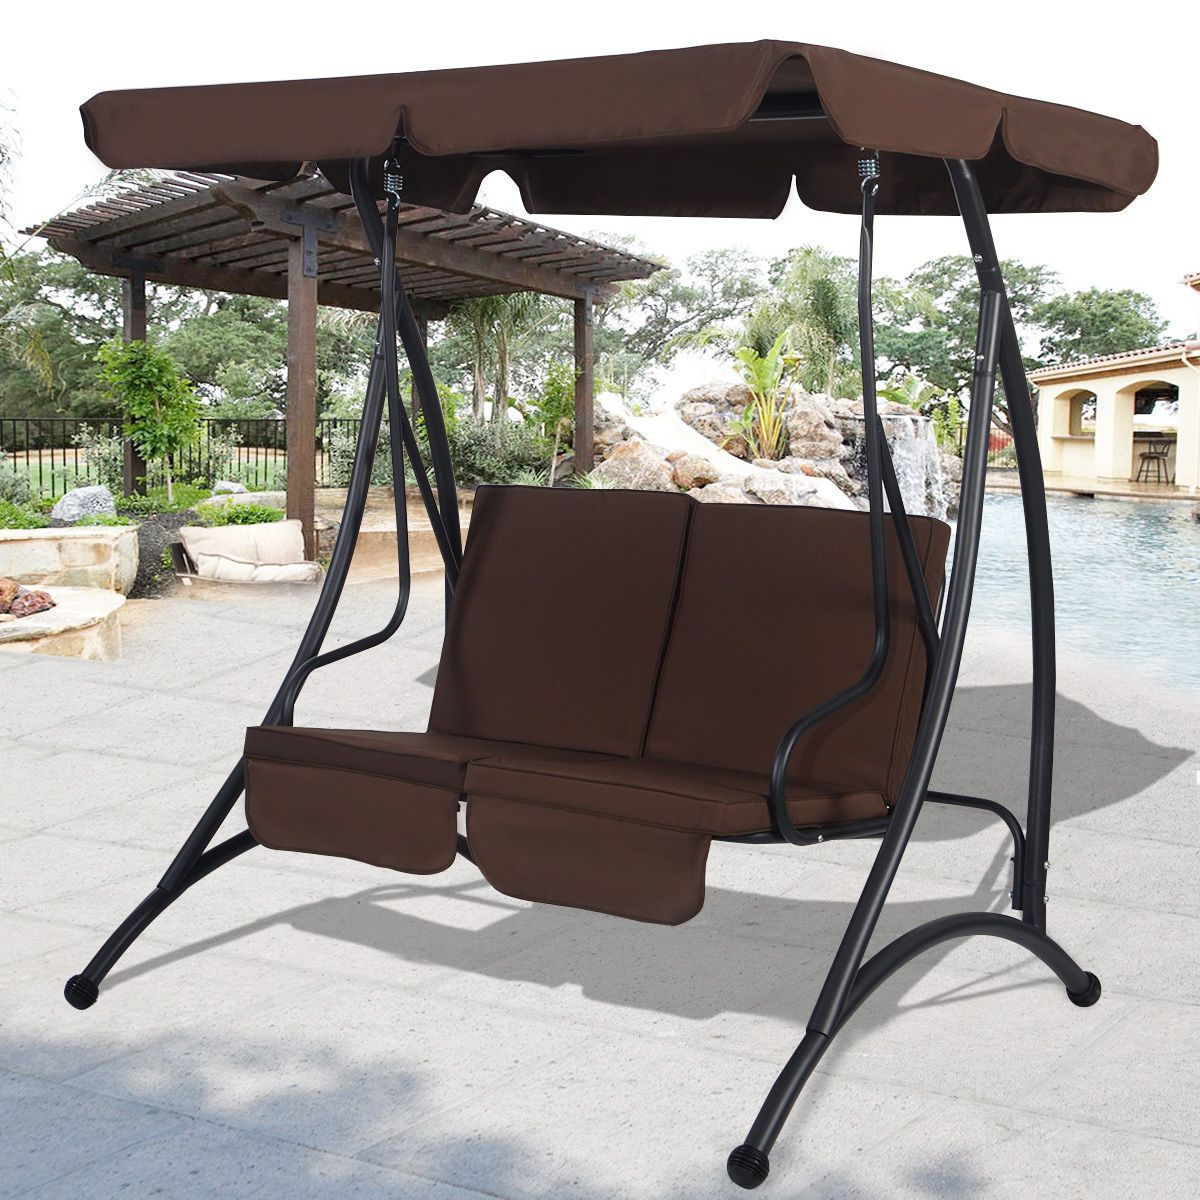 Outdoor Patio Canopy Swing Chair Metal 2 Person Hammock Throughout Fashionable Garden Leisure Outdoor Hammock Patio Canopy Rocking Chairs (View 3 of 30)